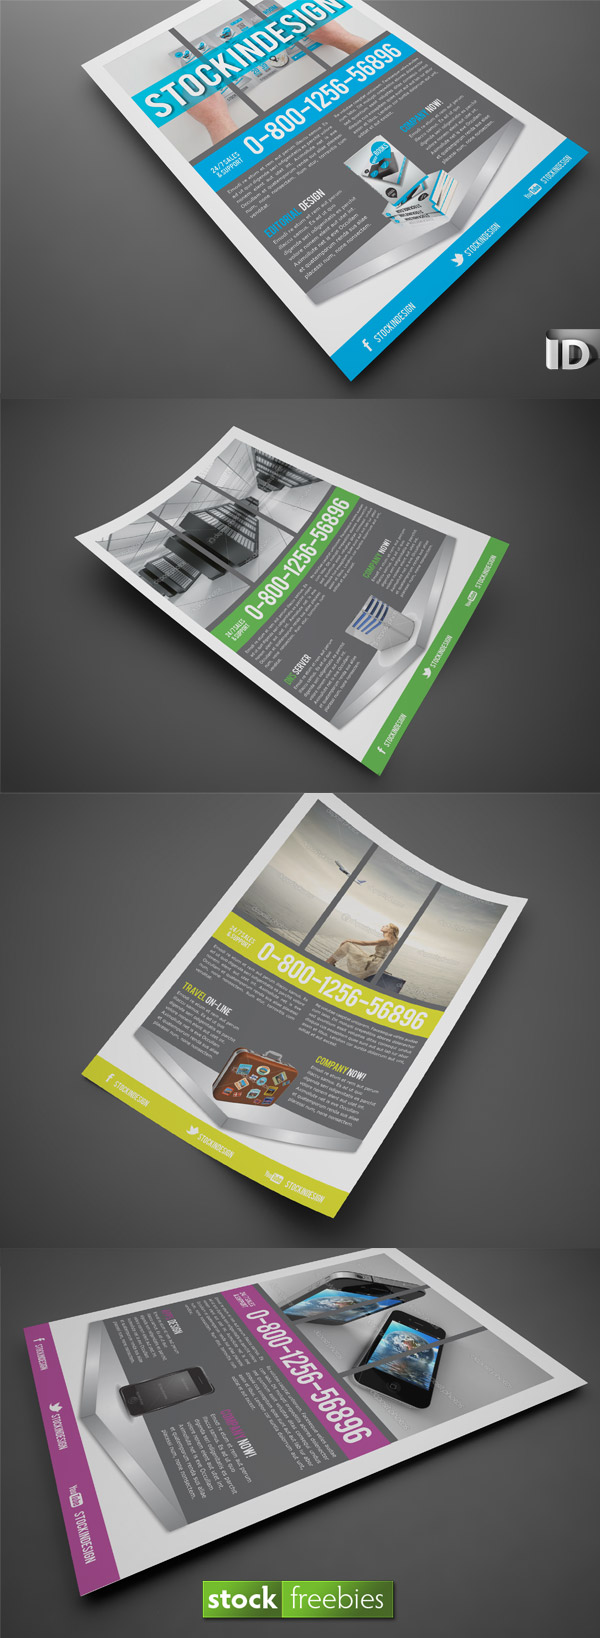 Product Showcase Flyer - Free